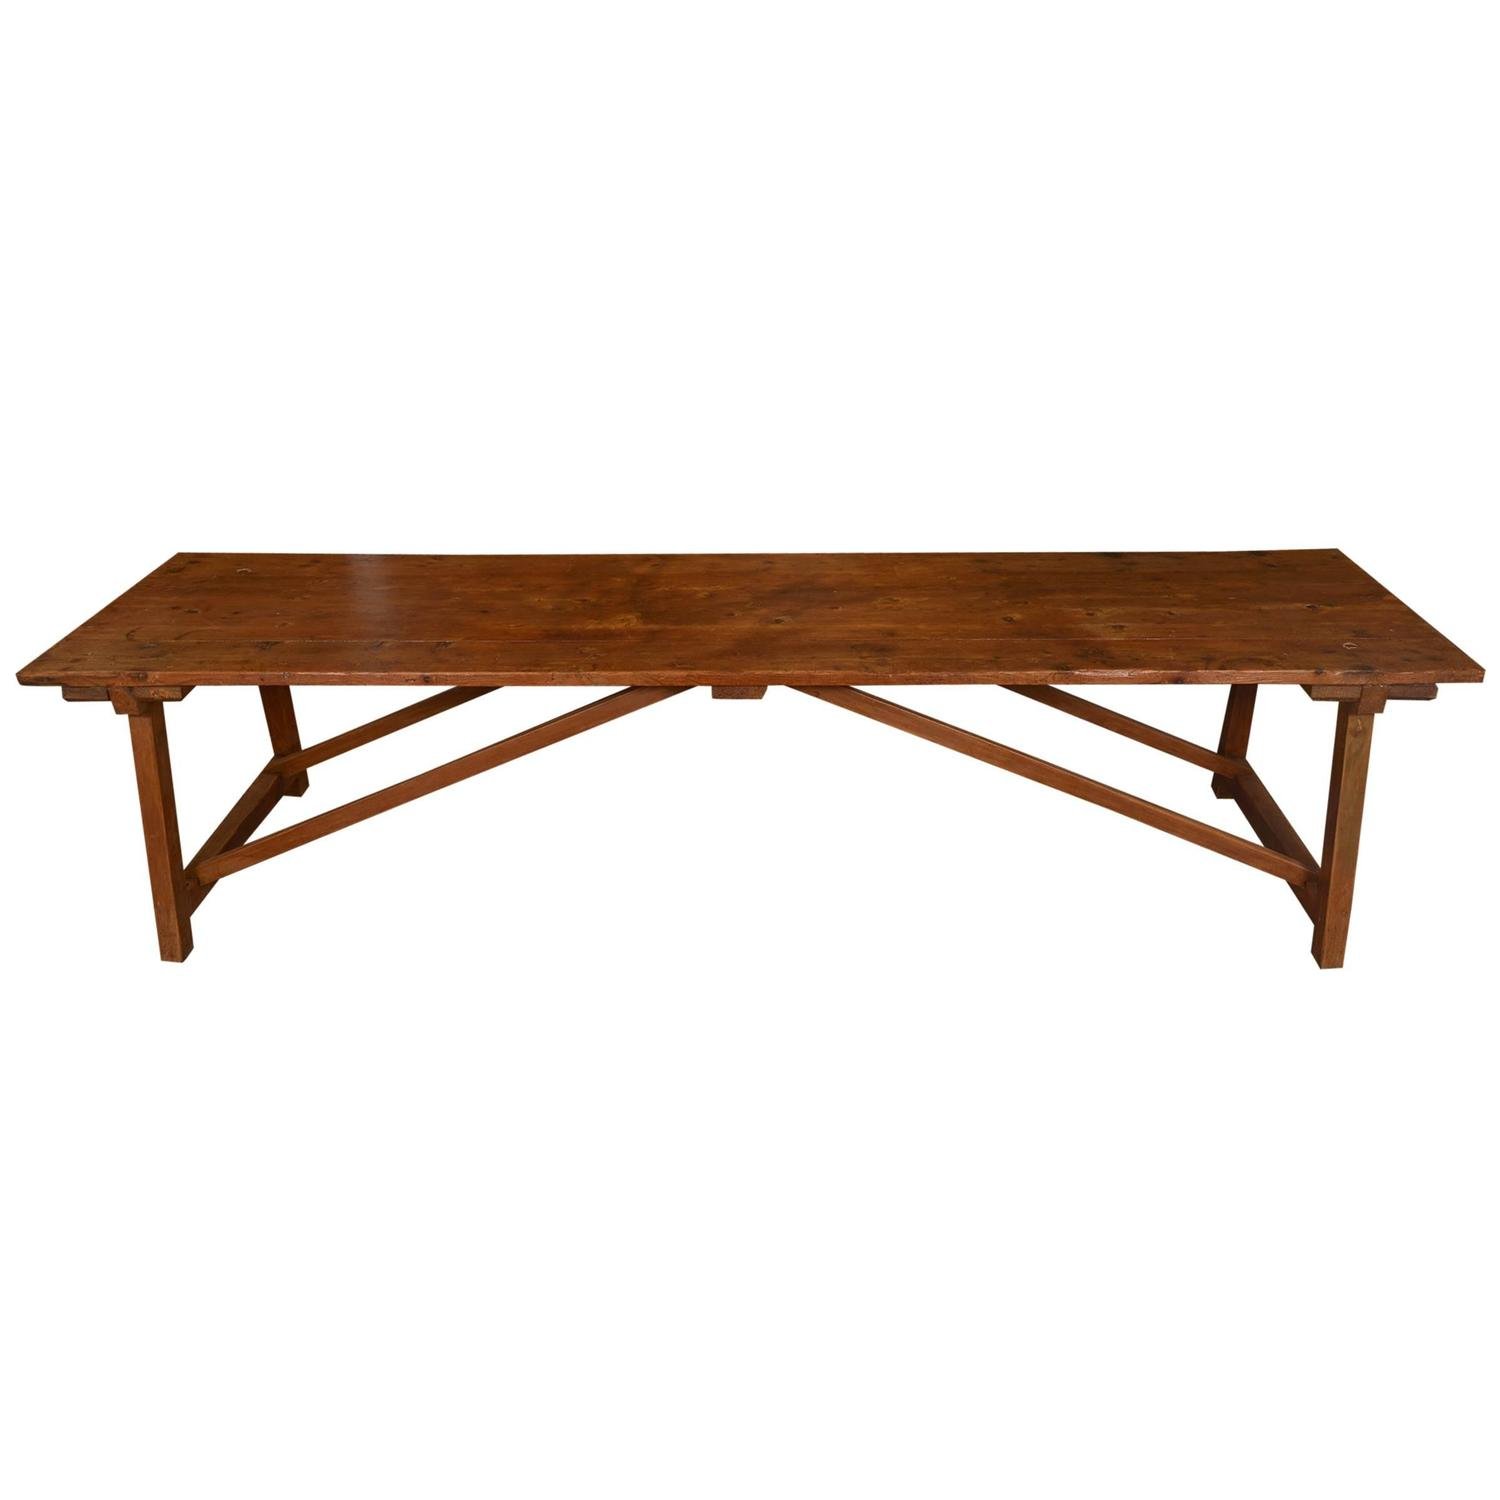 French dining table at 1stdibs for French dining table